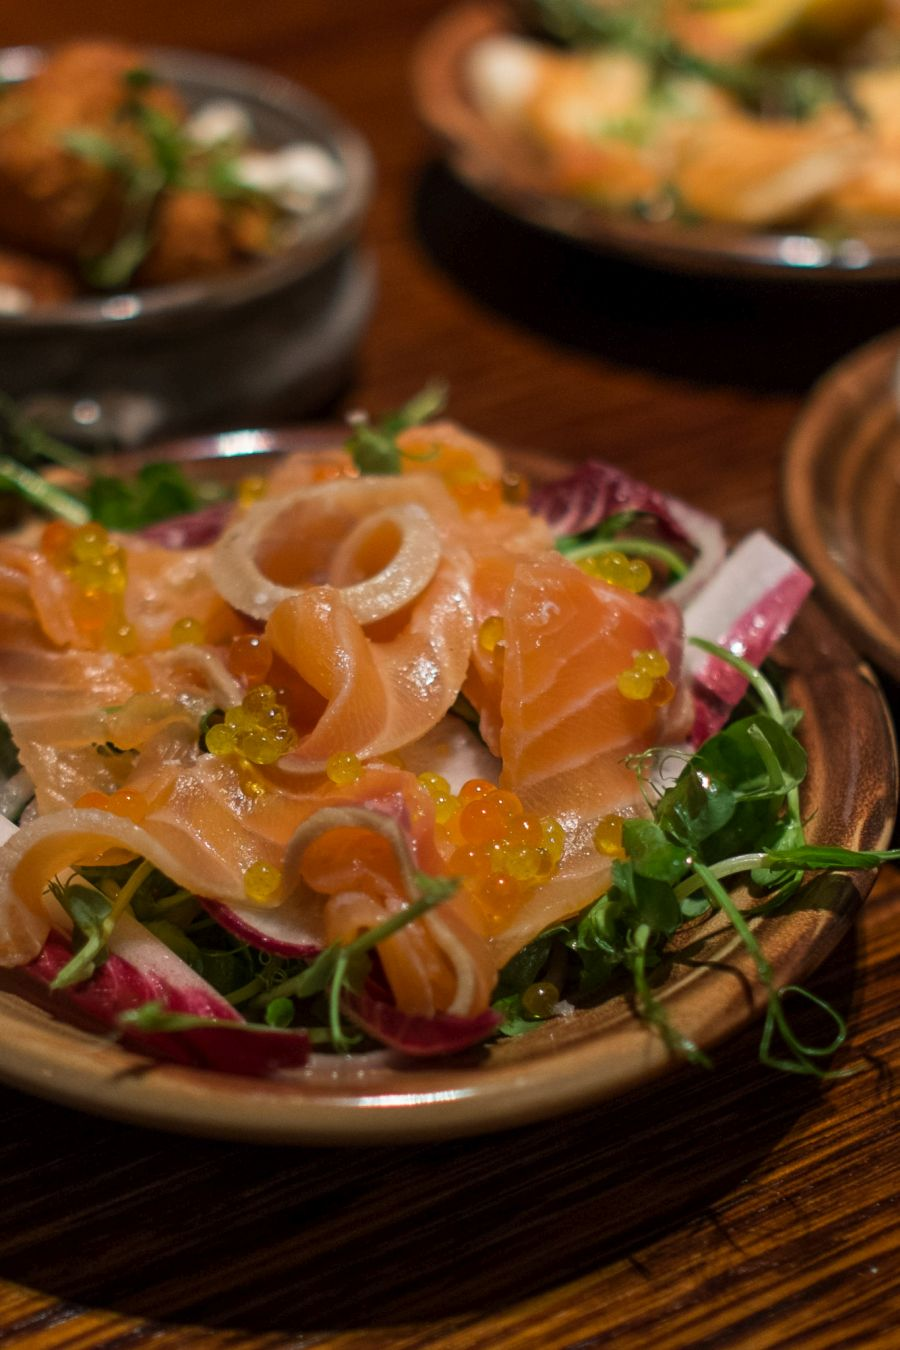 House-smoked apple and whisky cured salmon (AU$16, gluten-free)